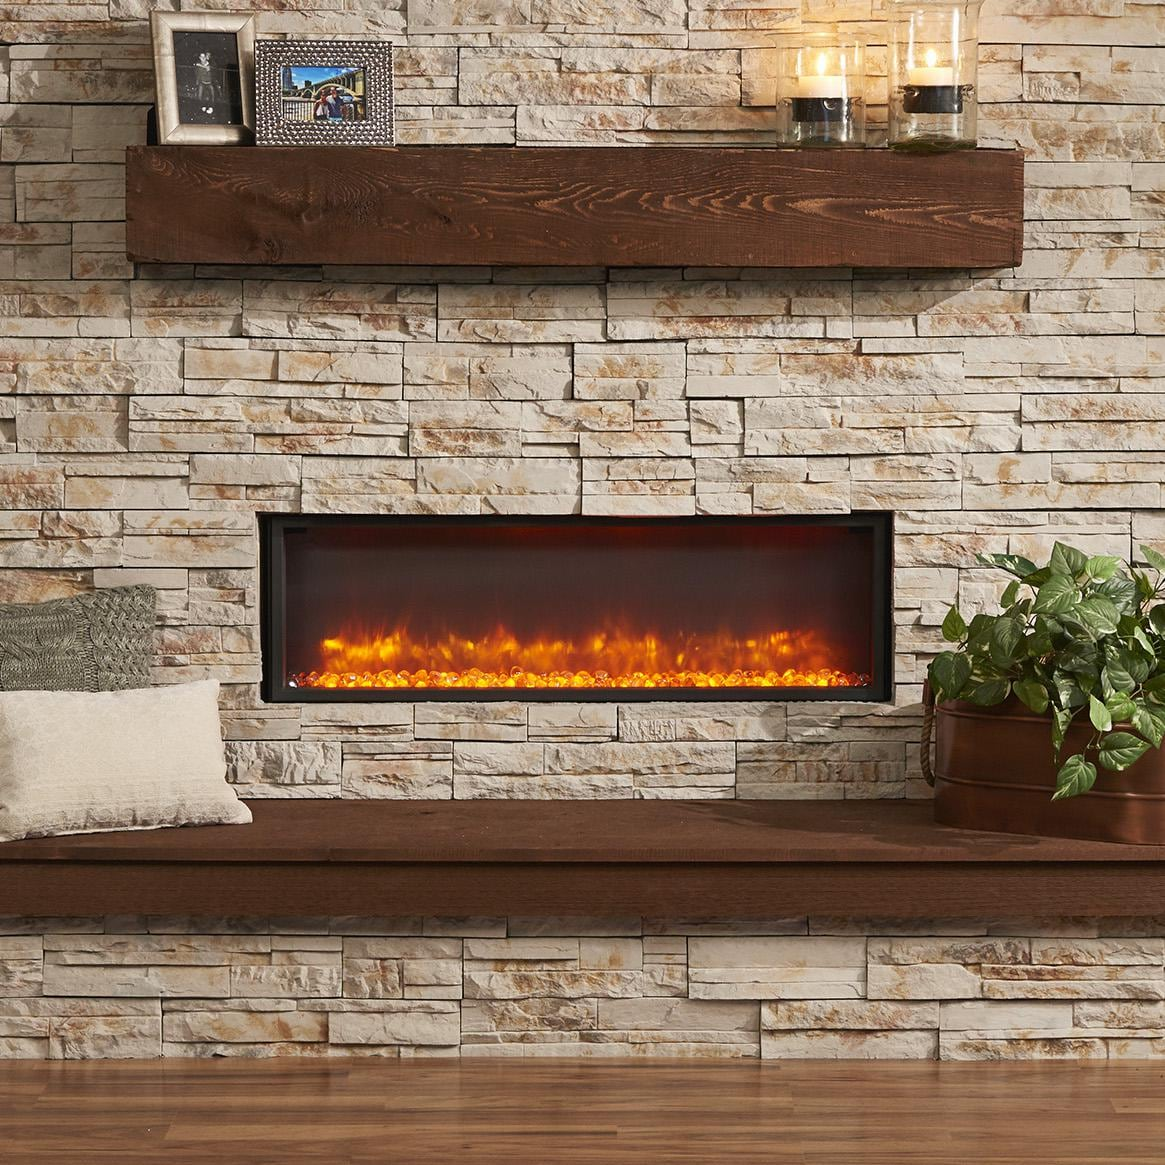 Build Your Own Fireplace Insert The 5 Most Realistic Electric Fireplaces Gas Log Guys